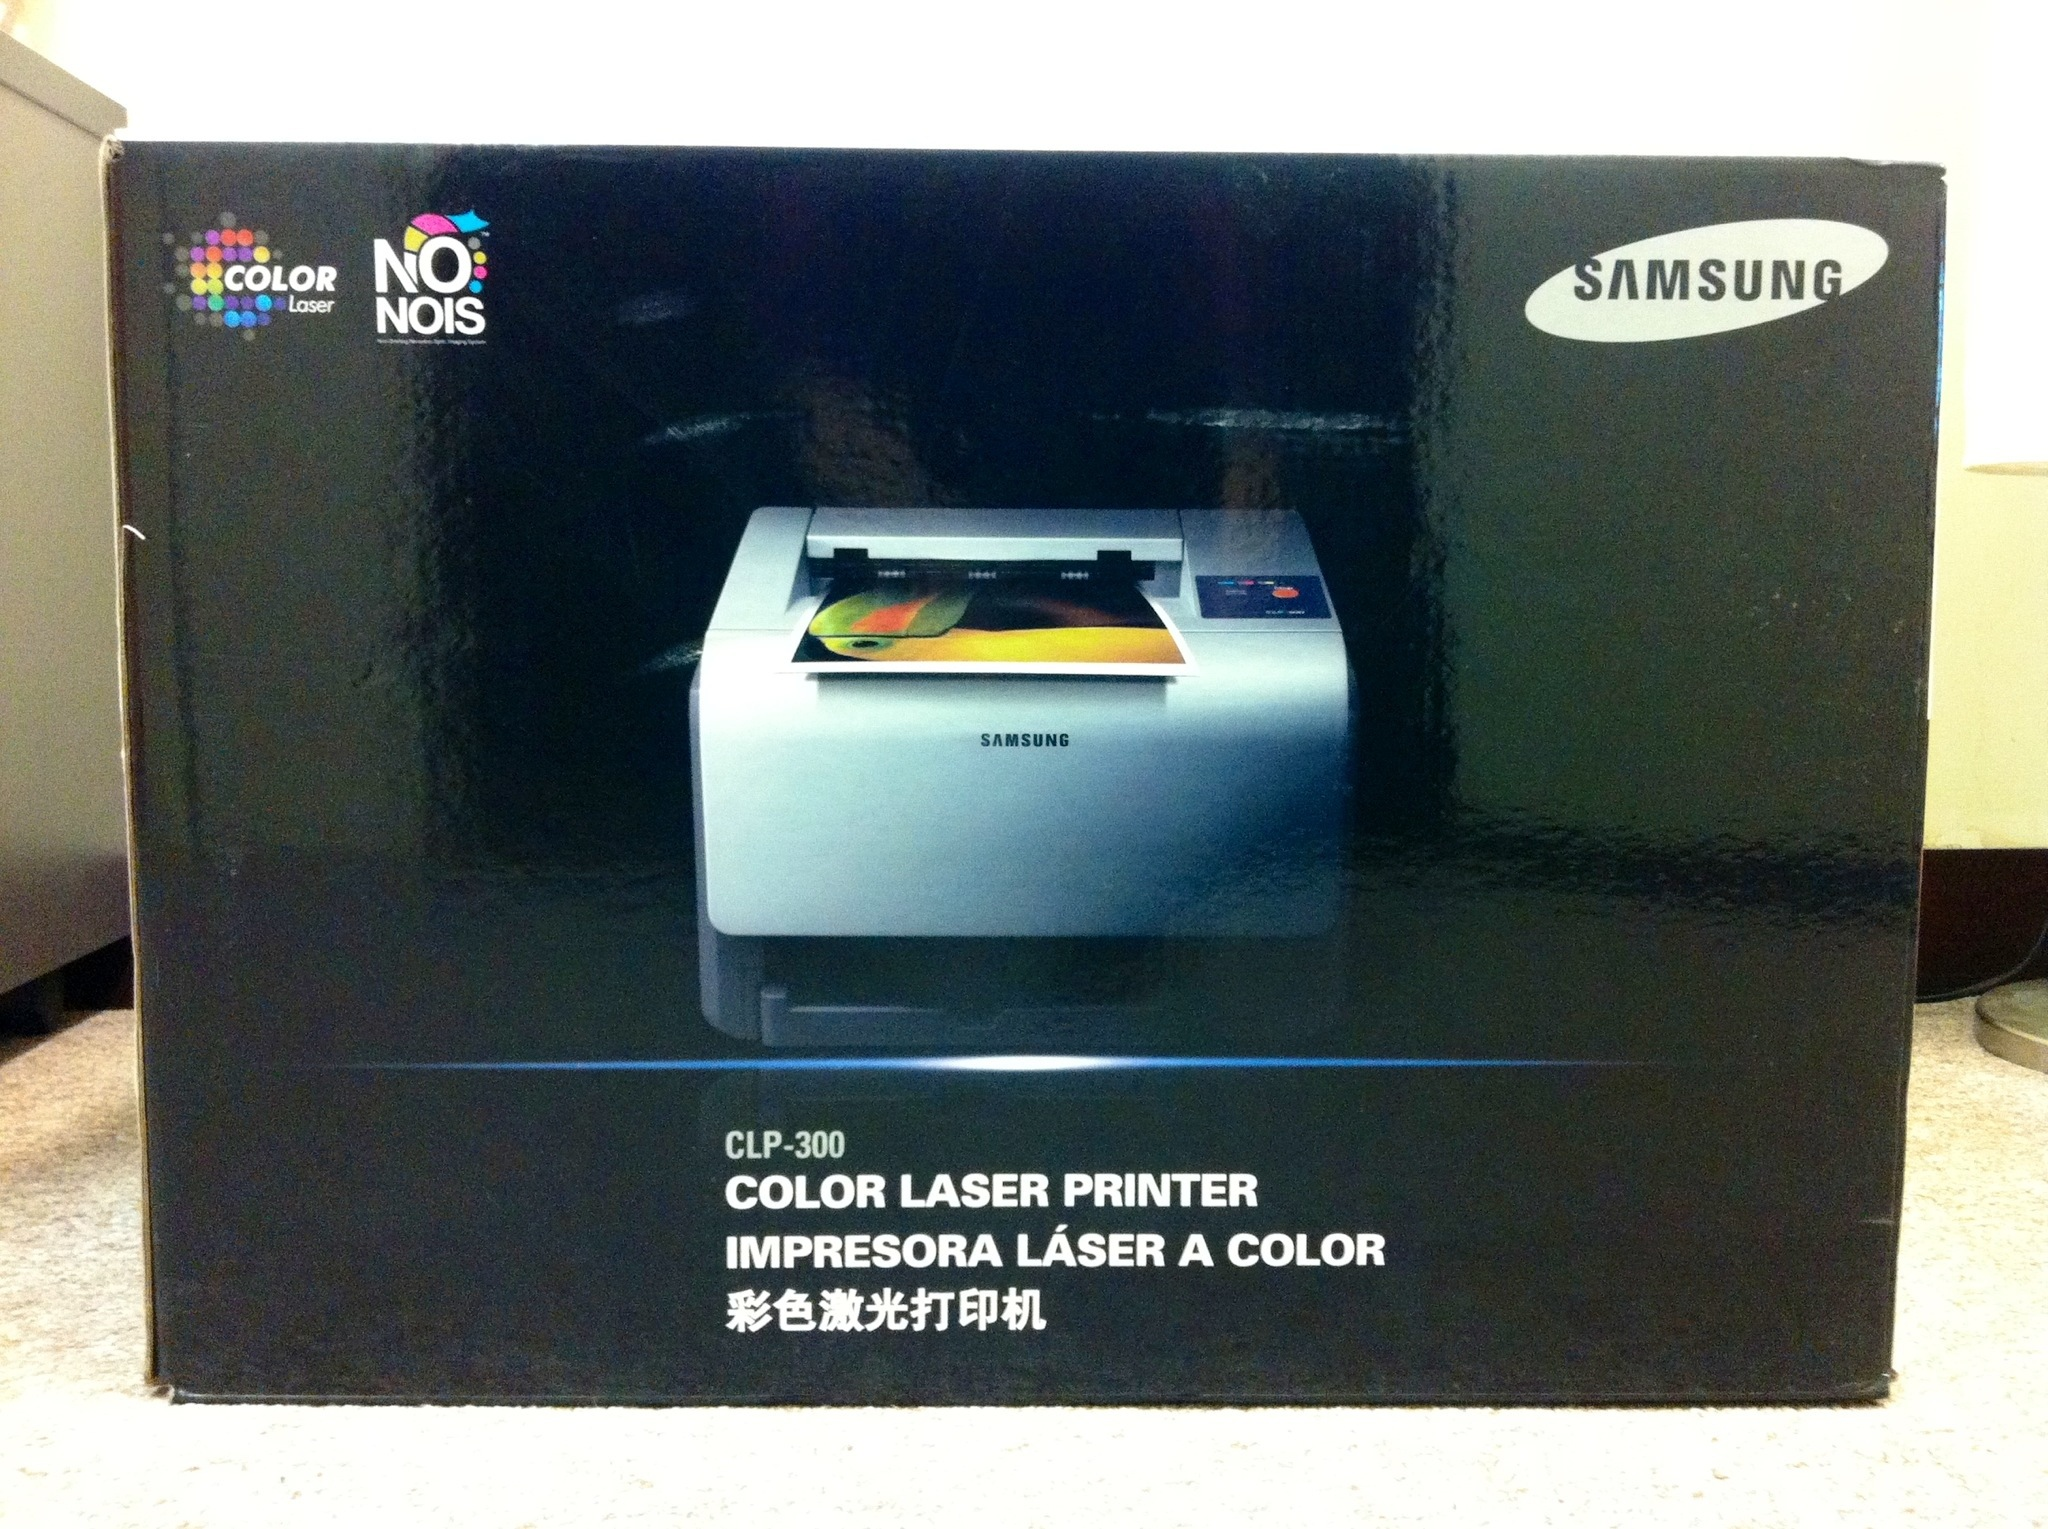 sold samsung color laser printer clp 300 unopened for sale s 200 adrian video image. Black Bedroom Furniture Sets. Home Design Ideas